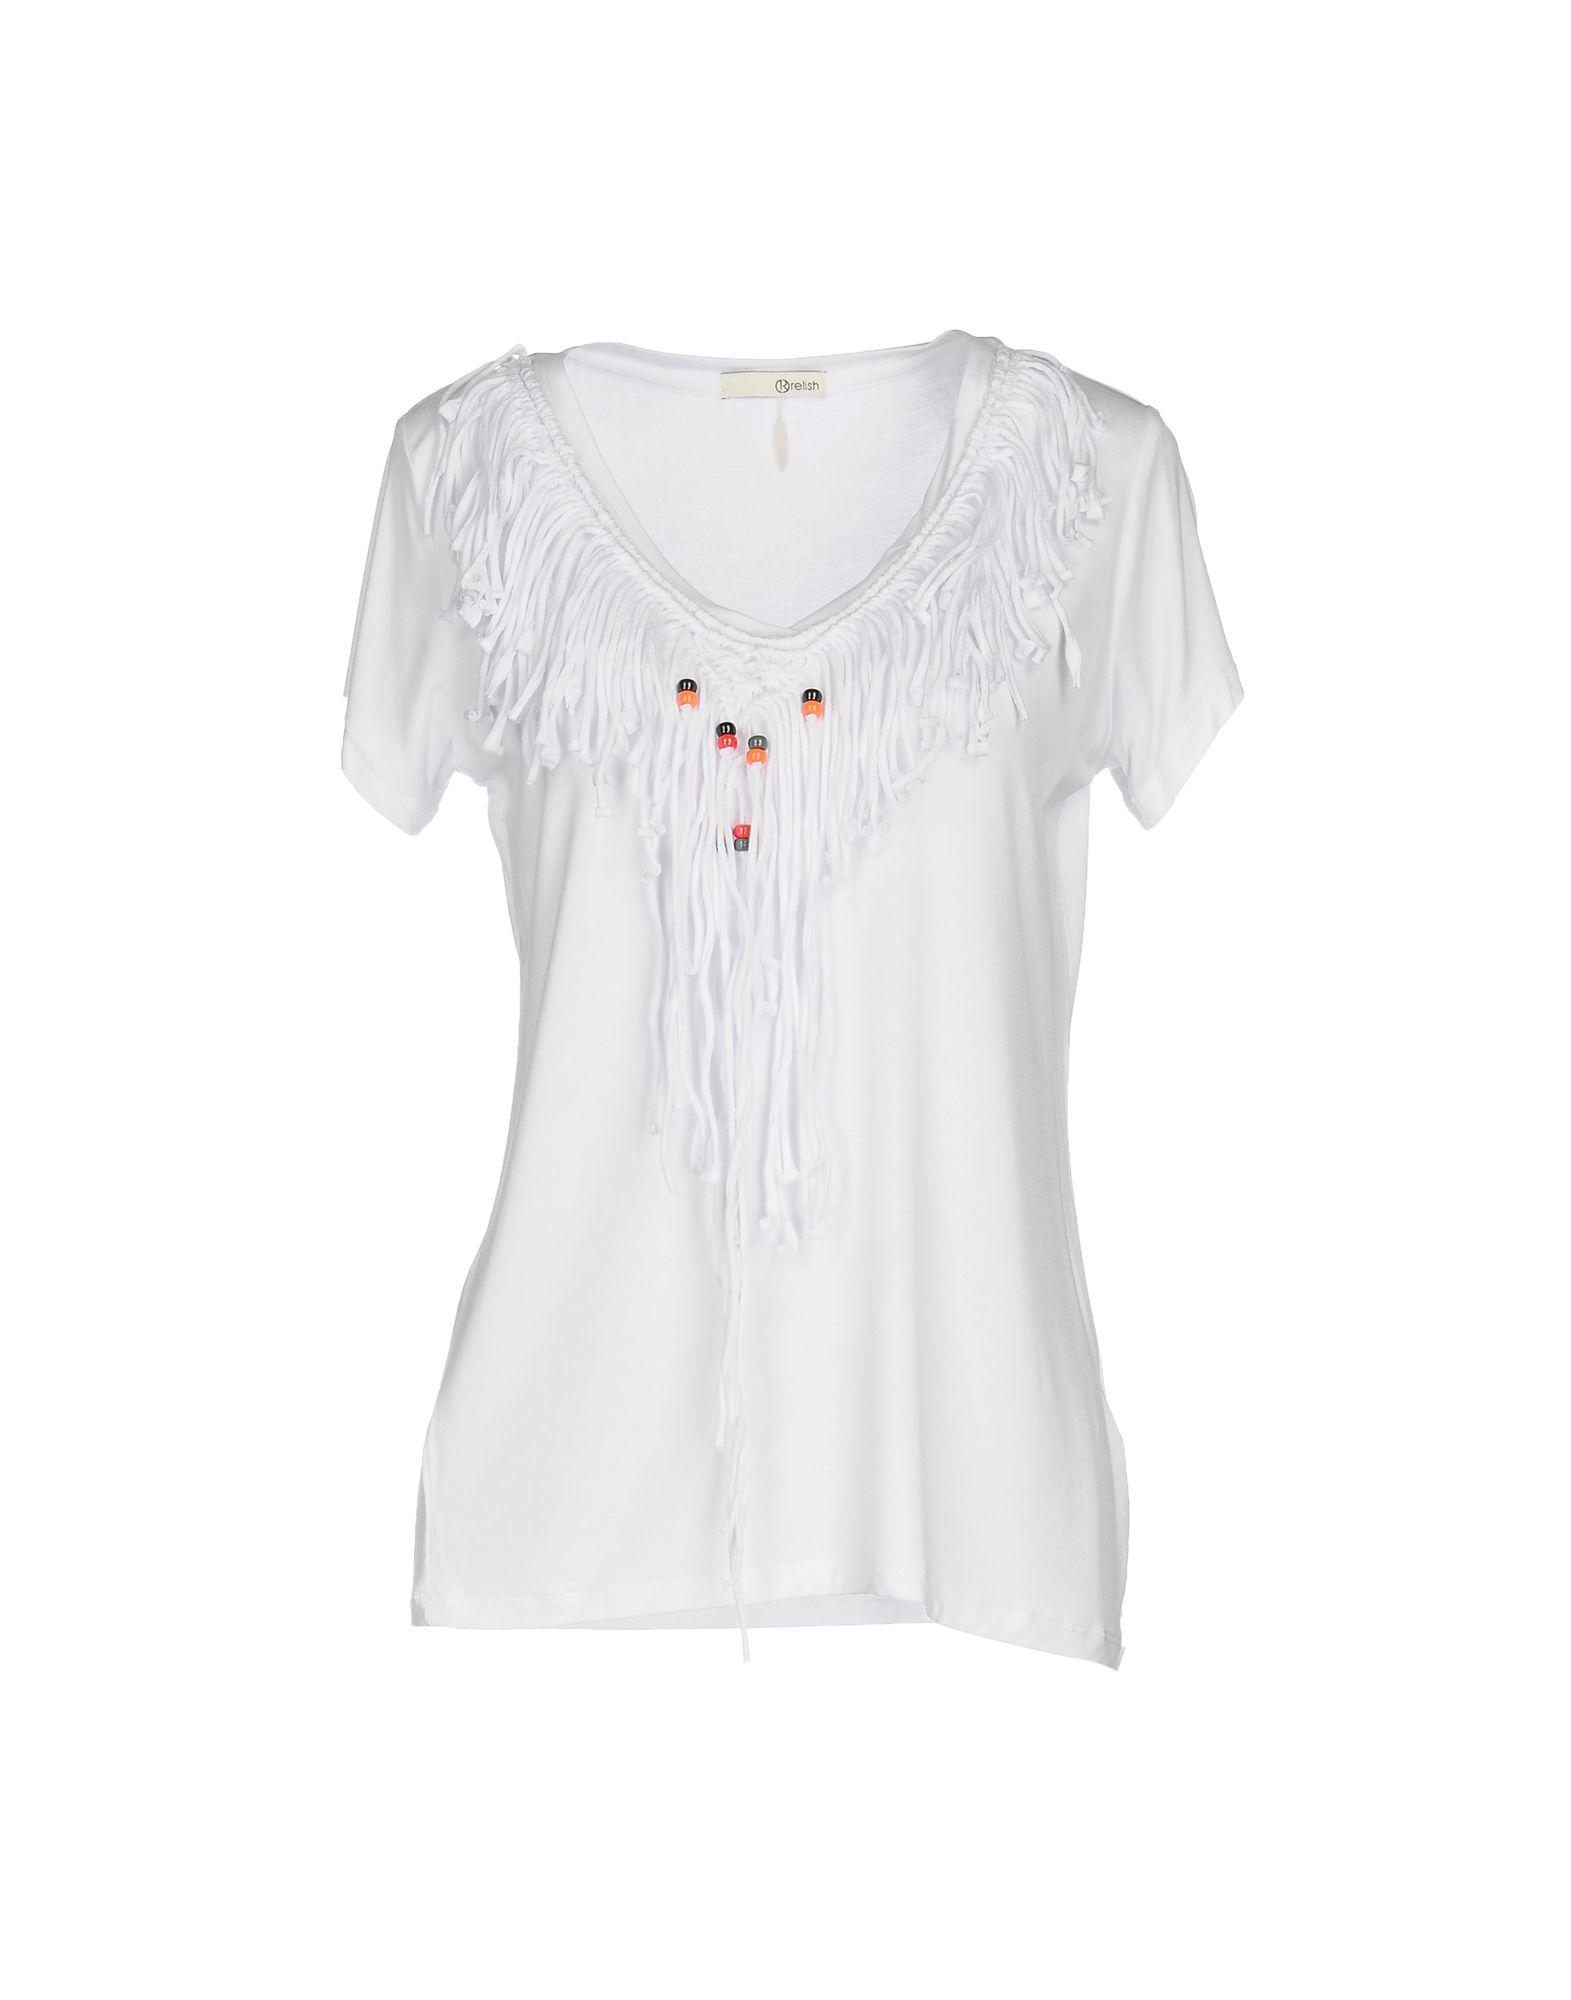 SHIRTS - Blouses Relish 100% Original Official Site Cheap Sale Outlet Locations Finishline 6IzAE